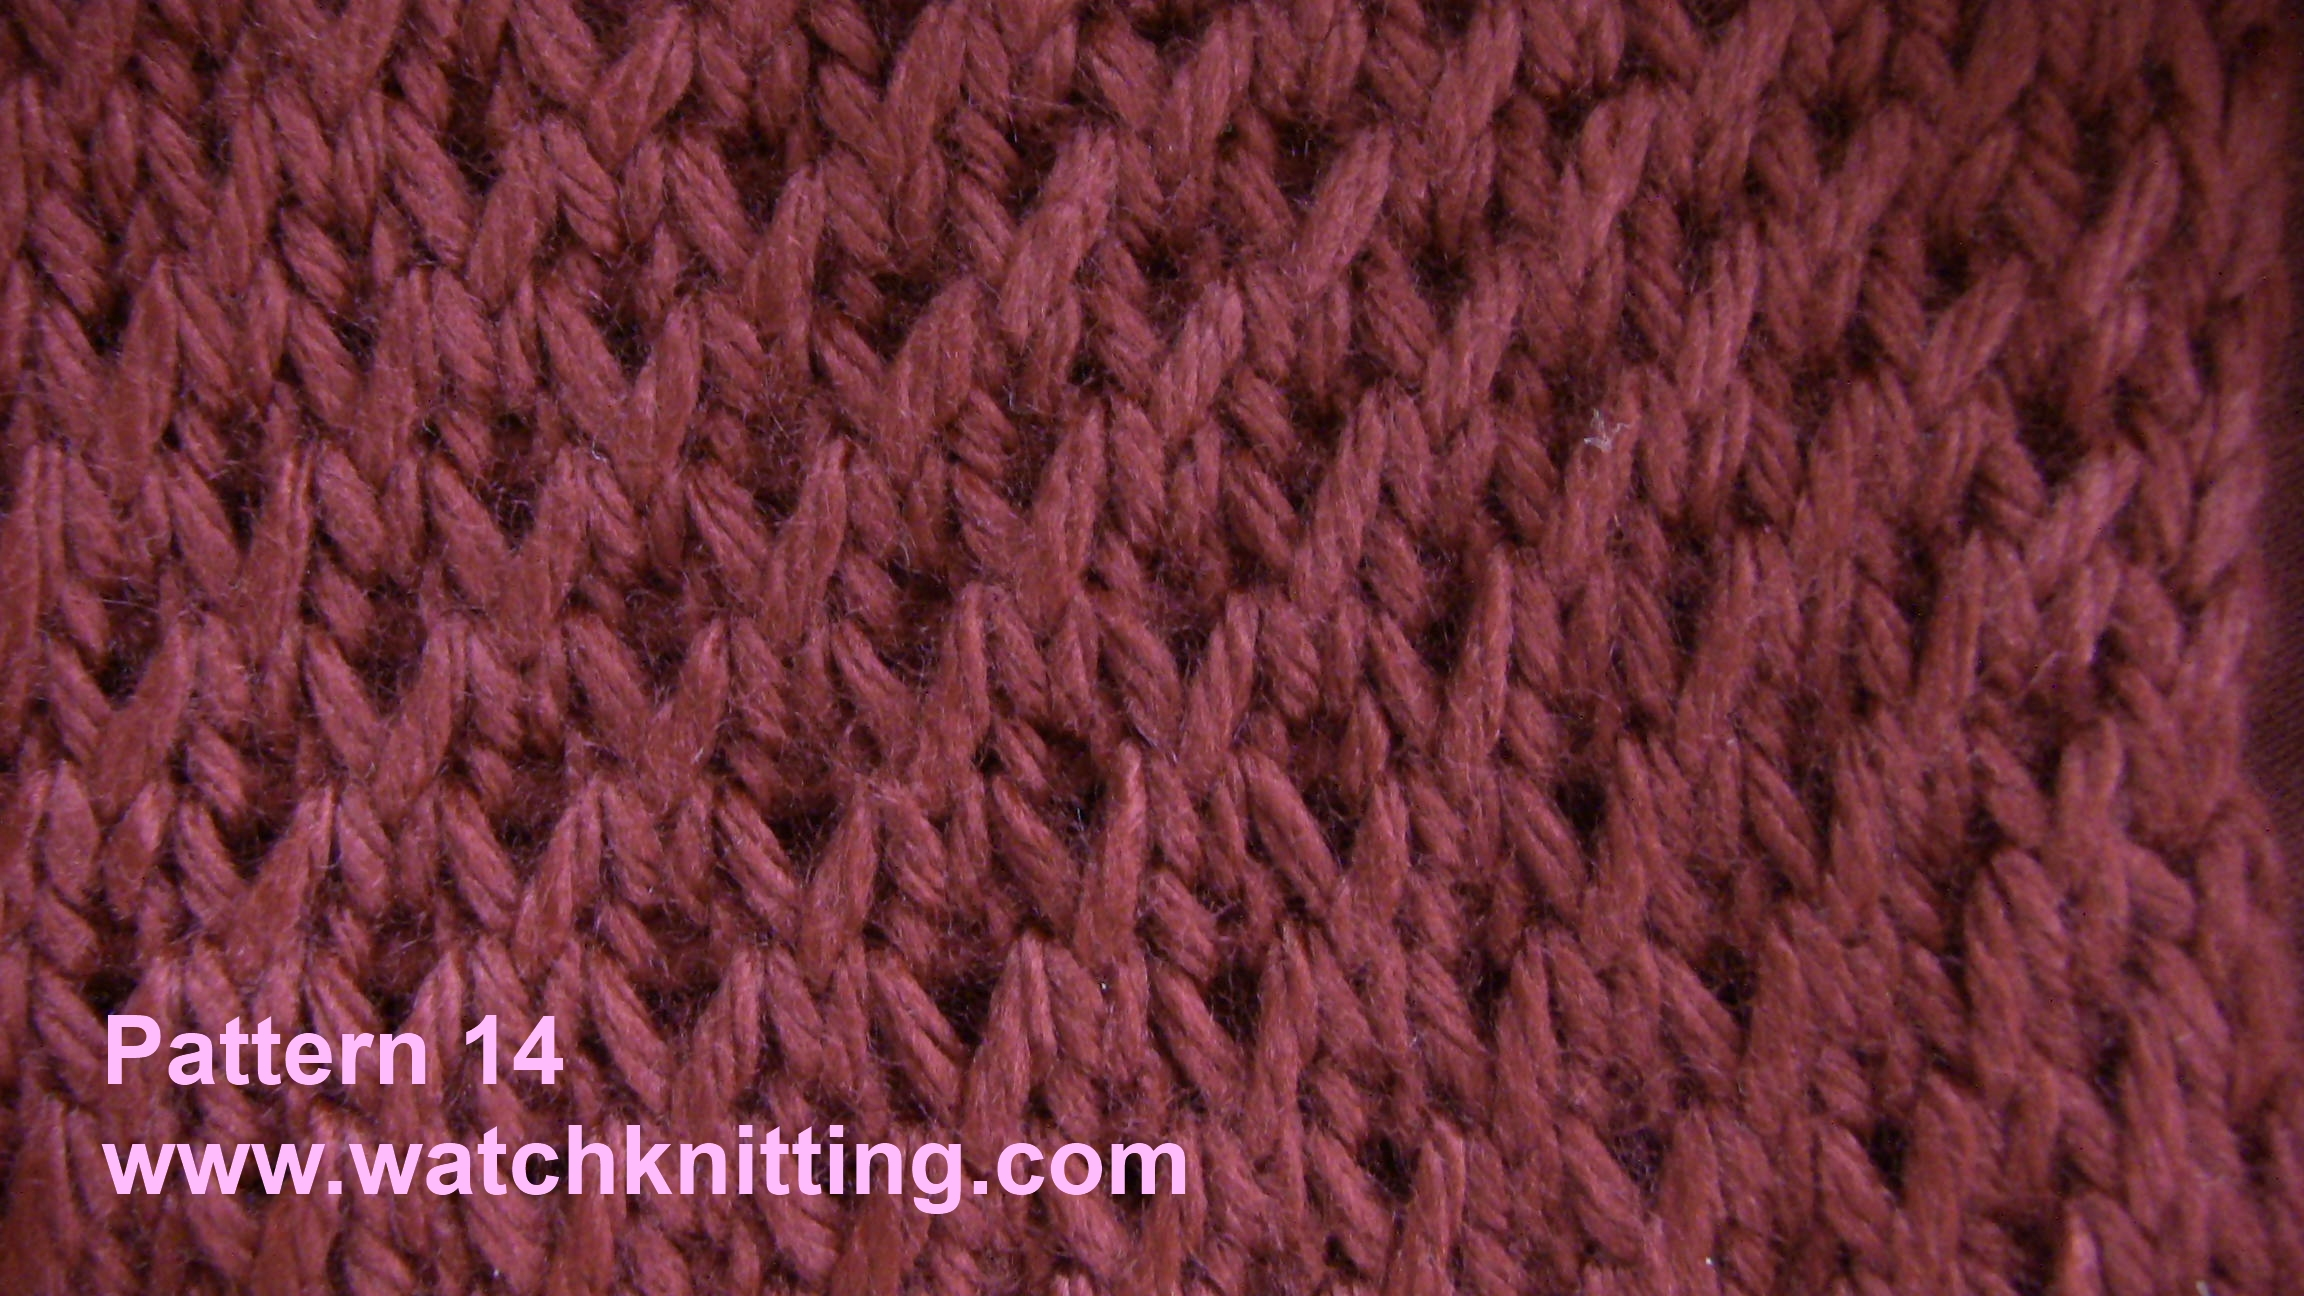 Stitch Patterns For Knitting : Simple Knitting models by basic stitches